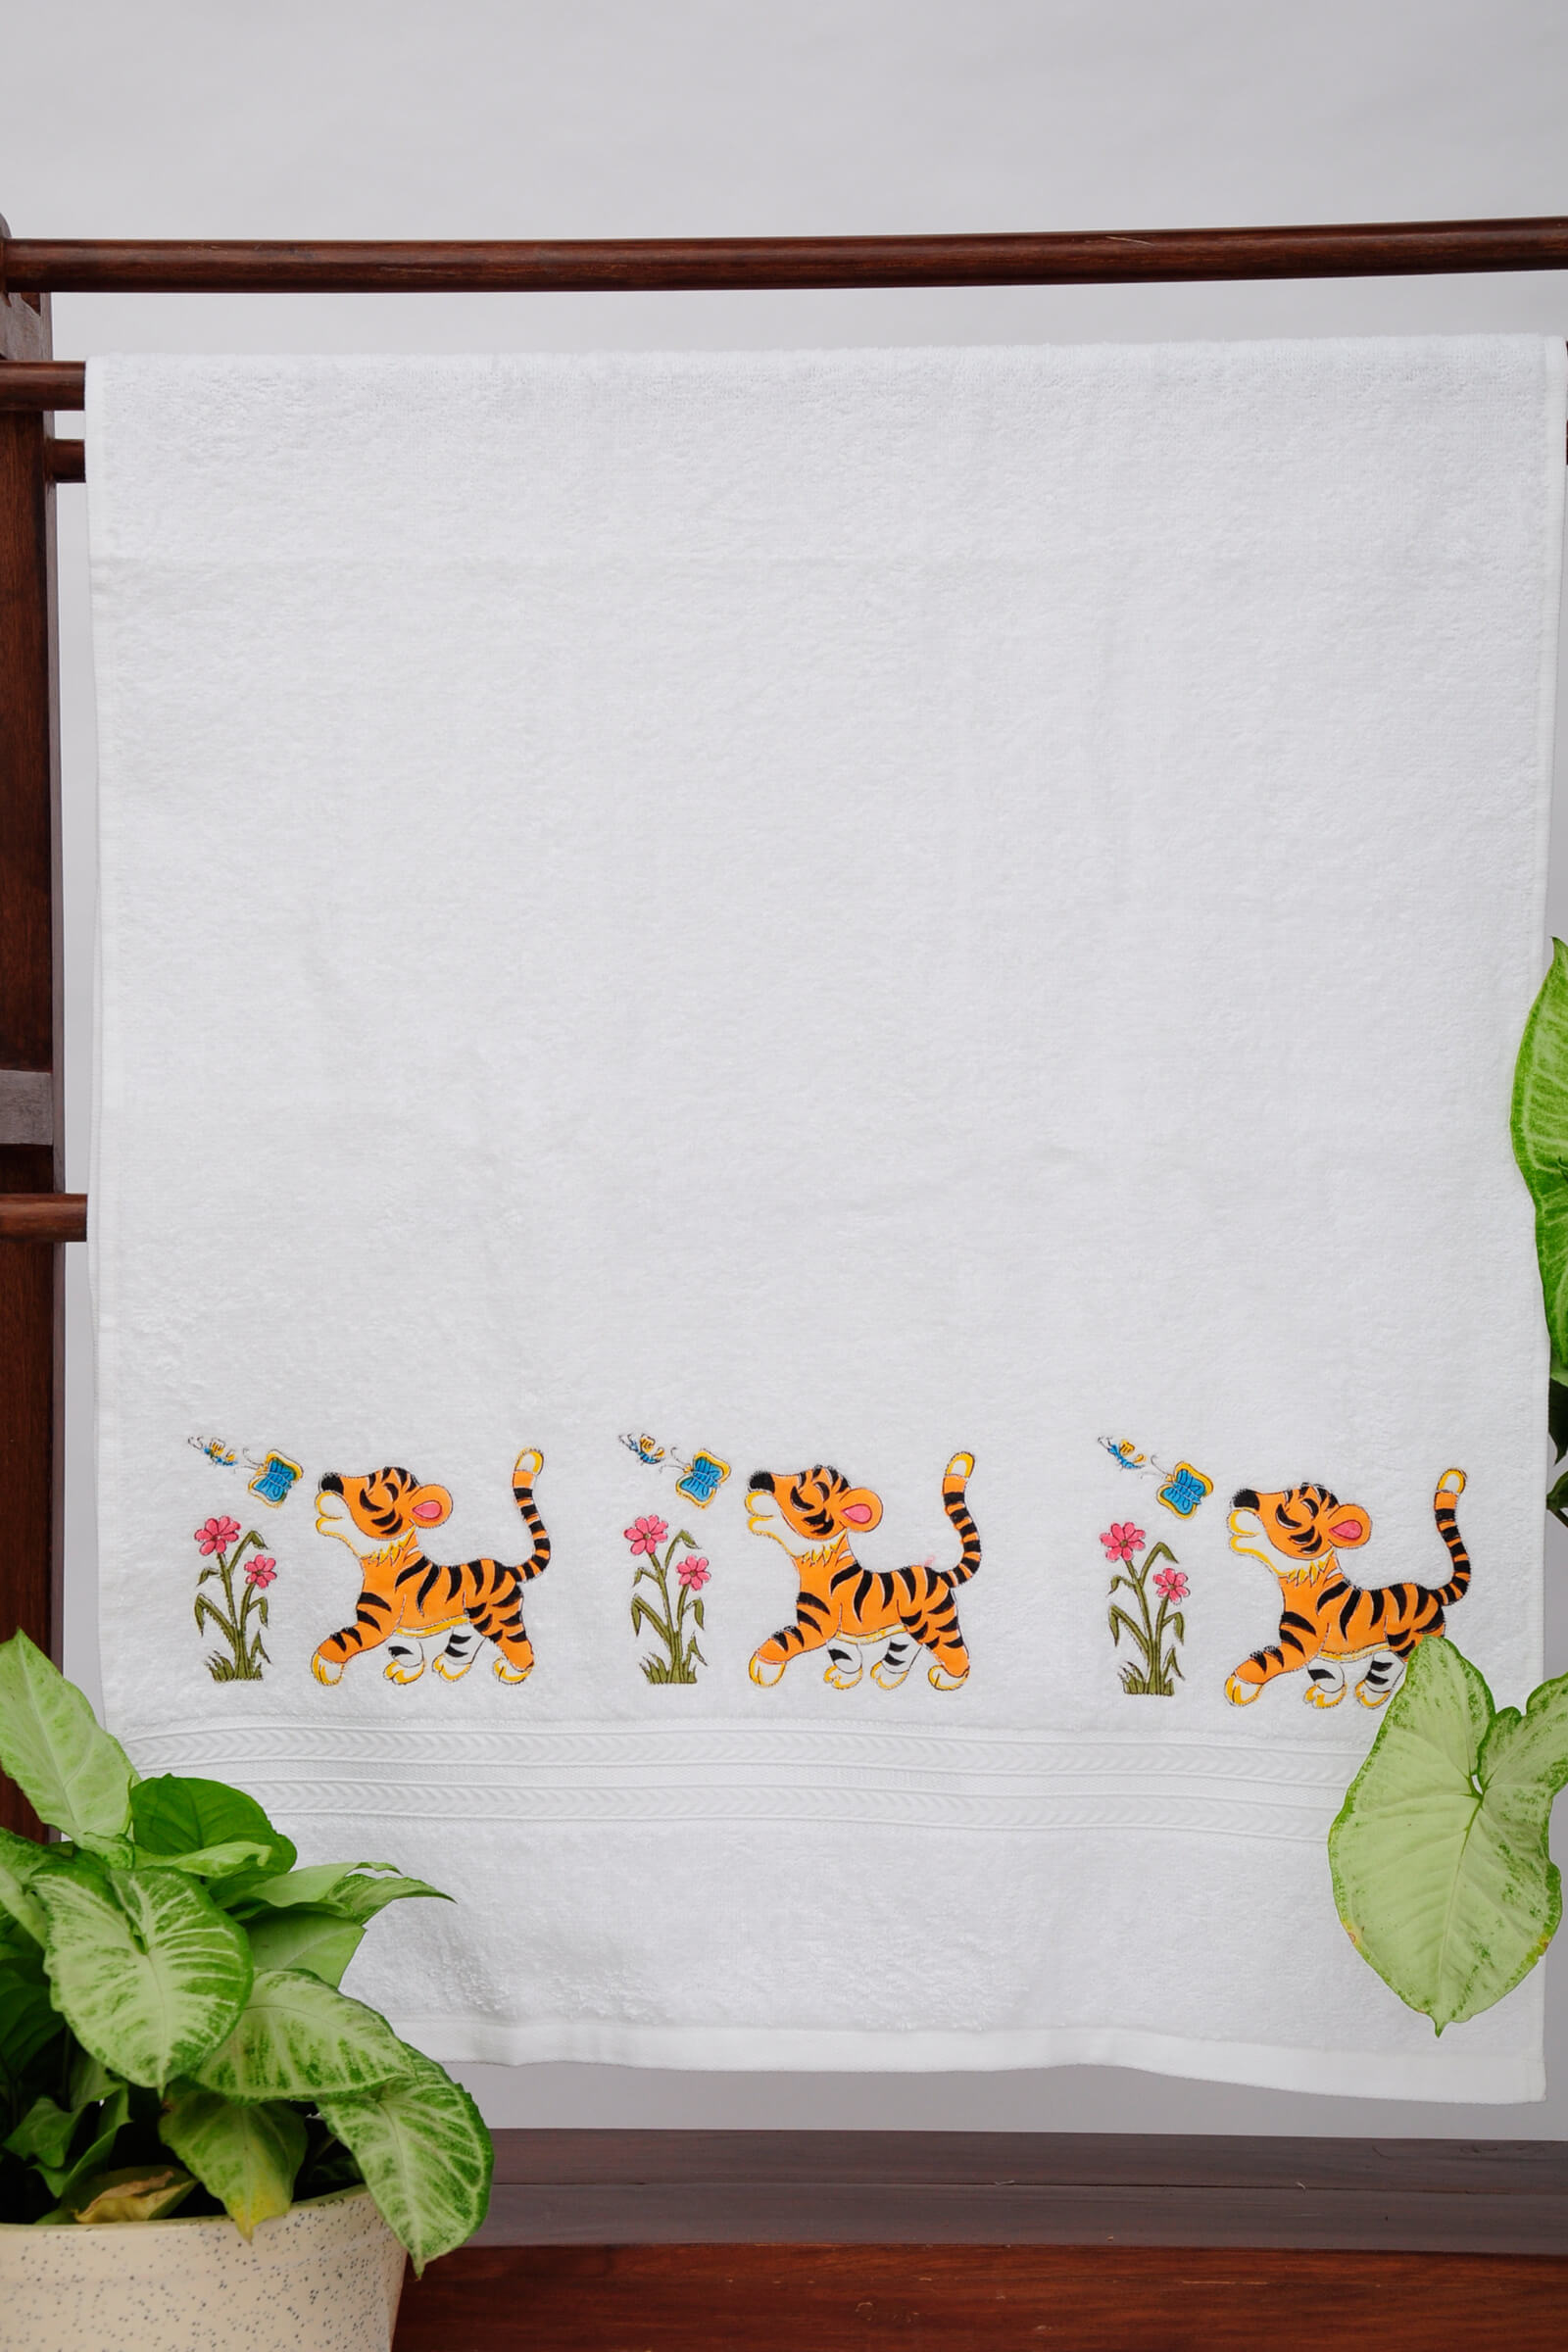 Baby Tigee Bath Towel